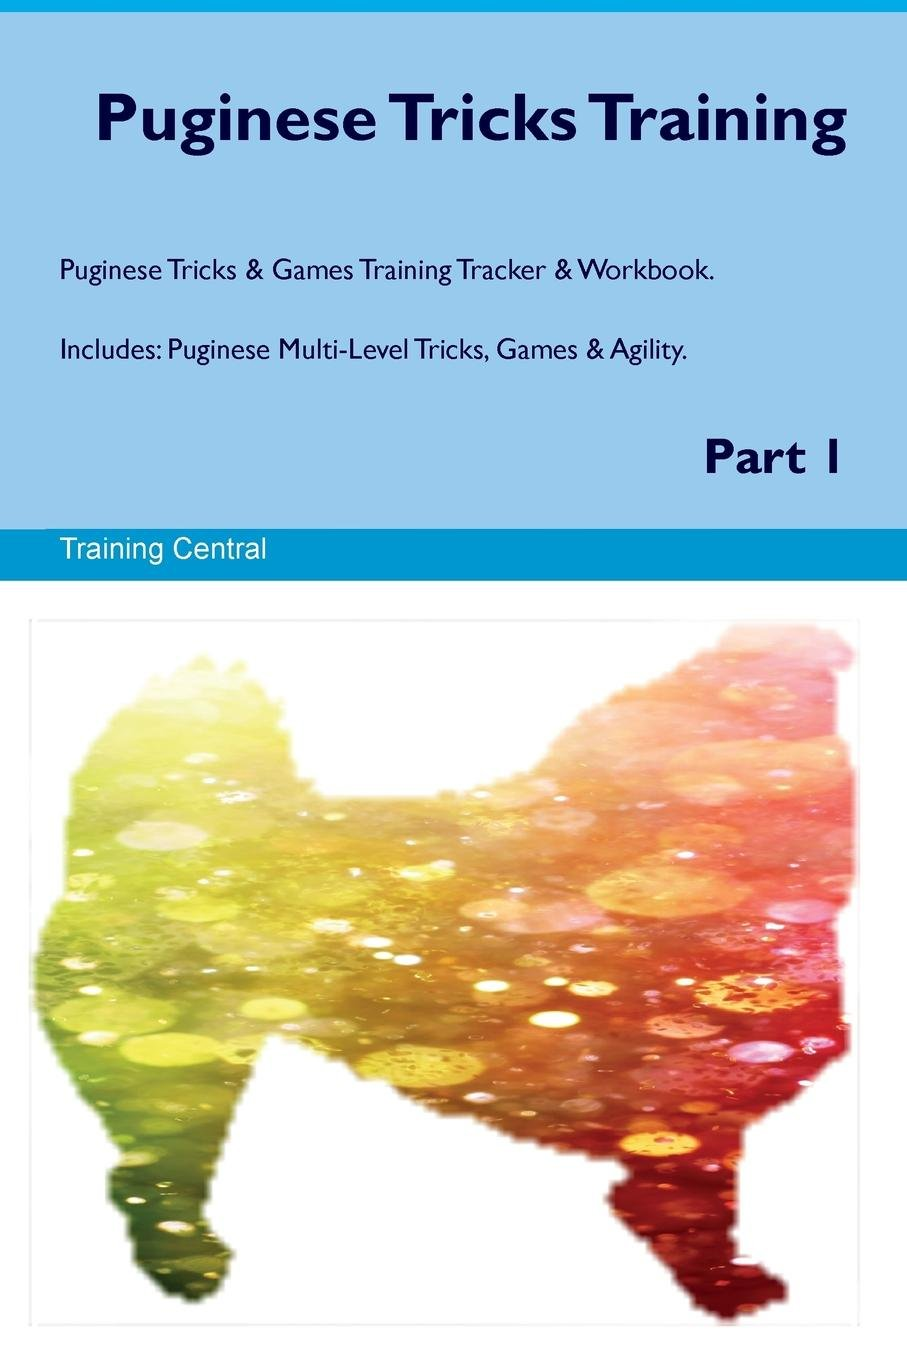 Download Puginese Tricks Training Puginese Tricks & Games Training Tracker & Workbook.  Includes: Puginese Multi-Level Tricks, Games & Agility. Part 1 pdf